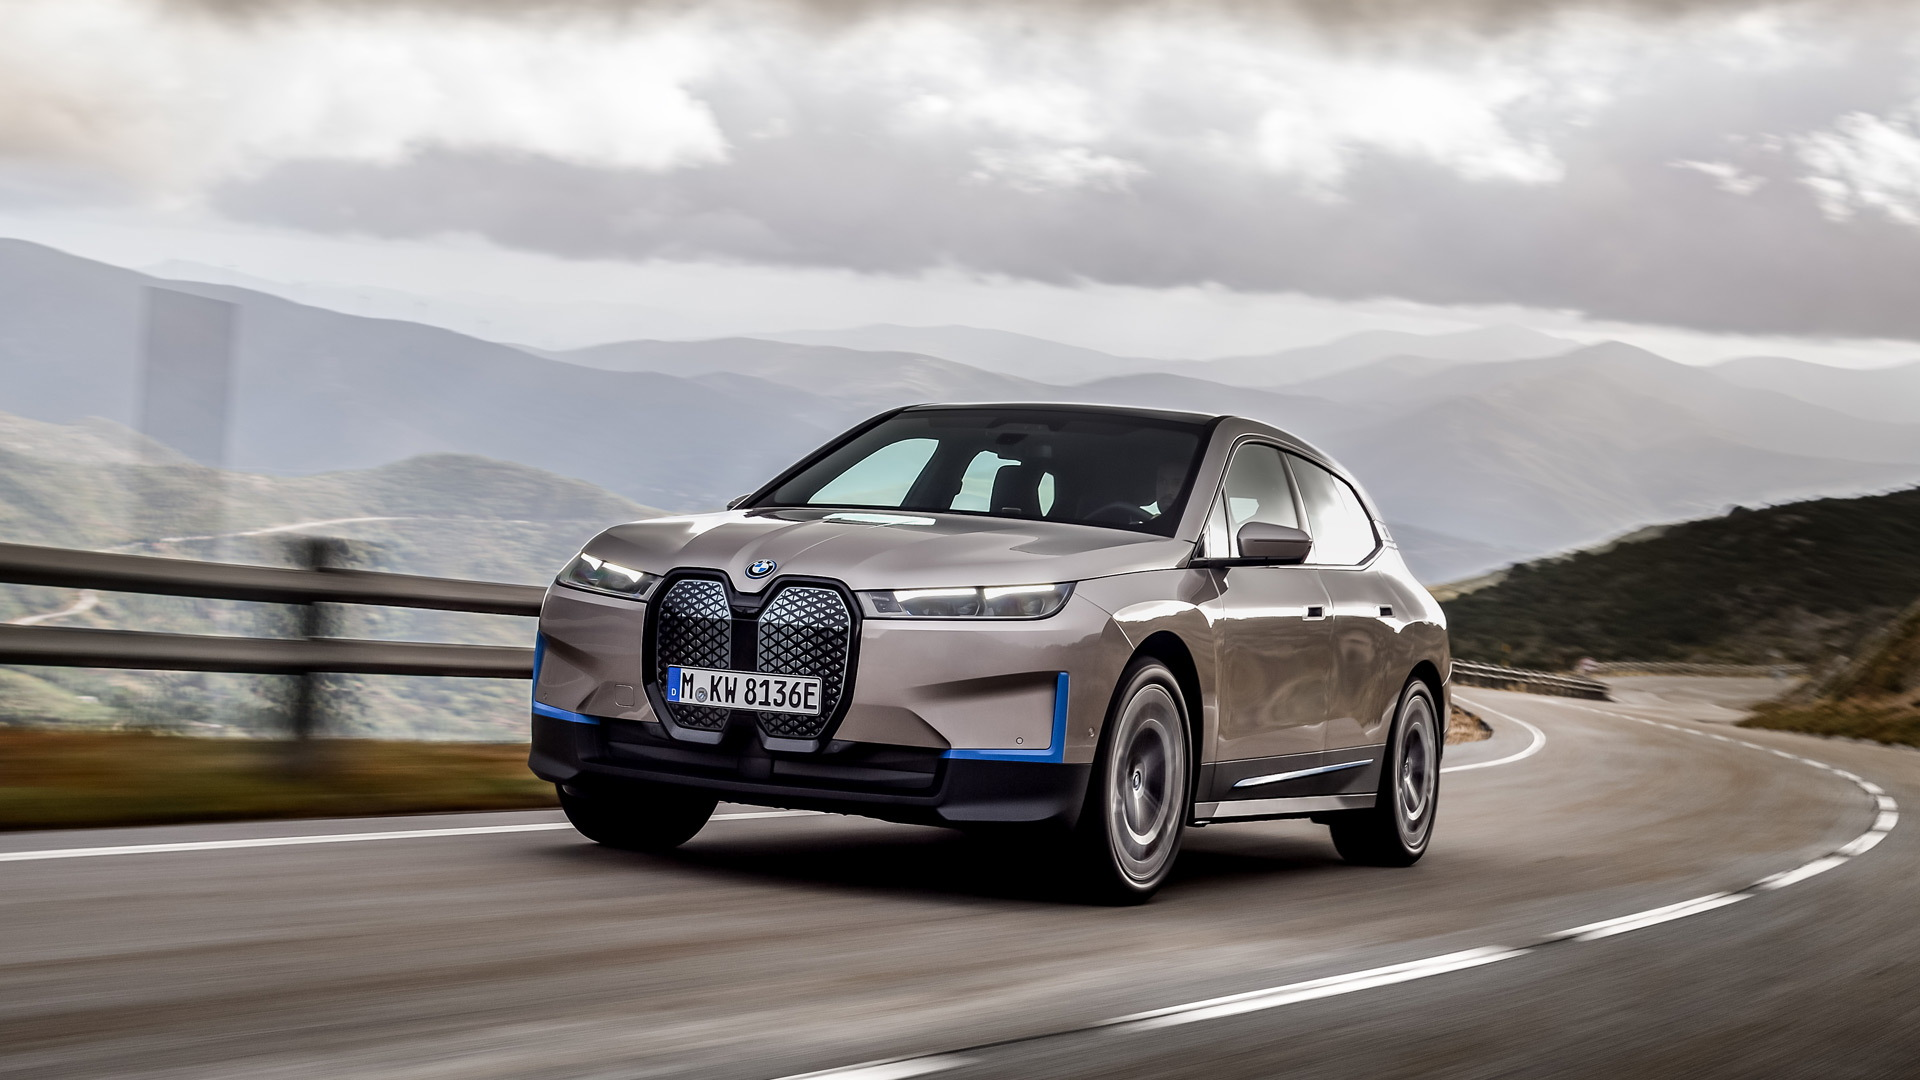 BMW's EV Flagship, 300-mile iX Makes its Debut